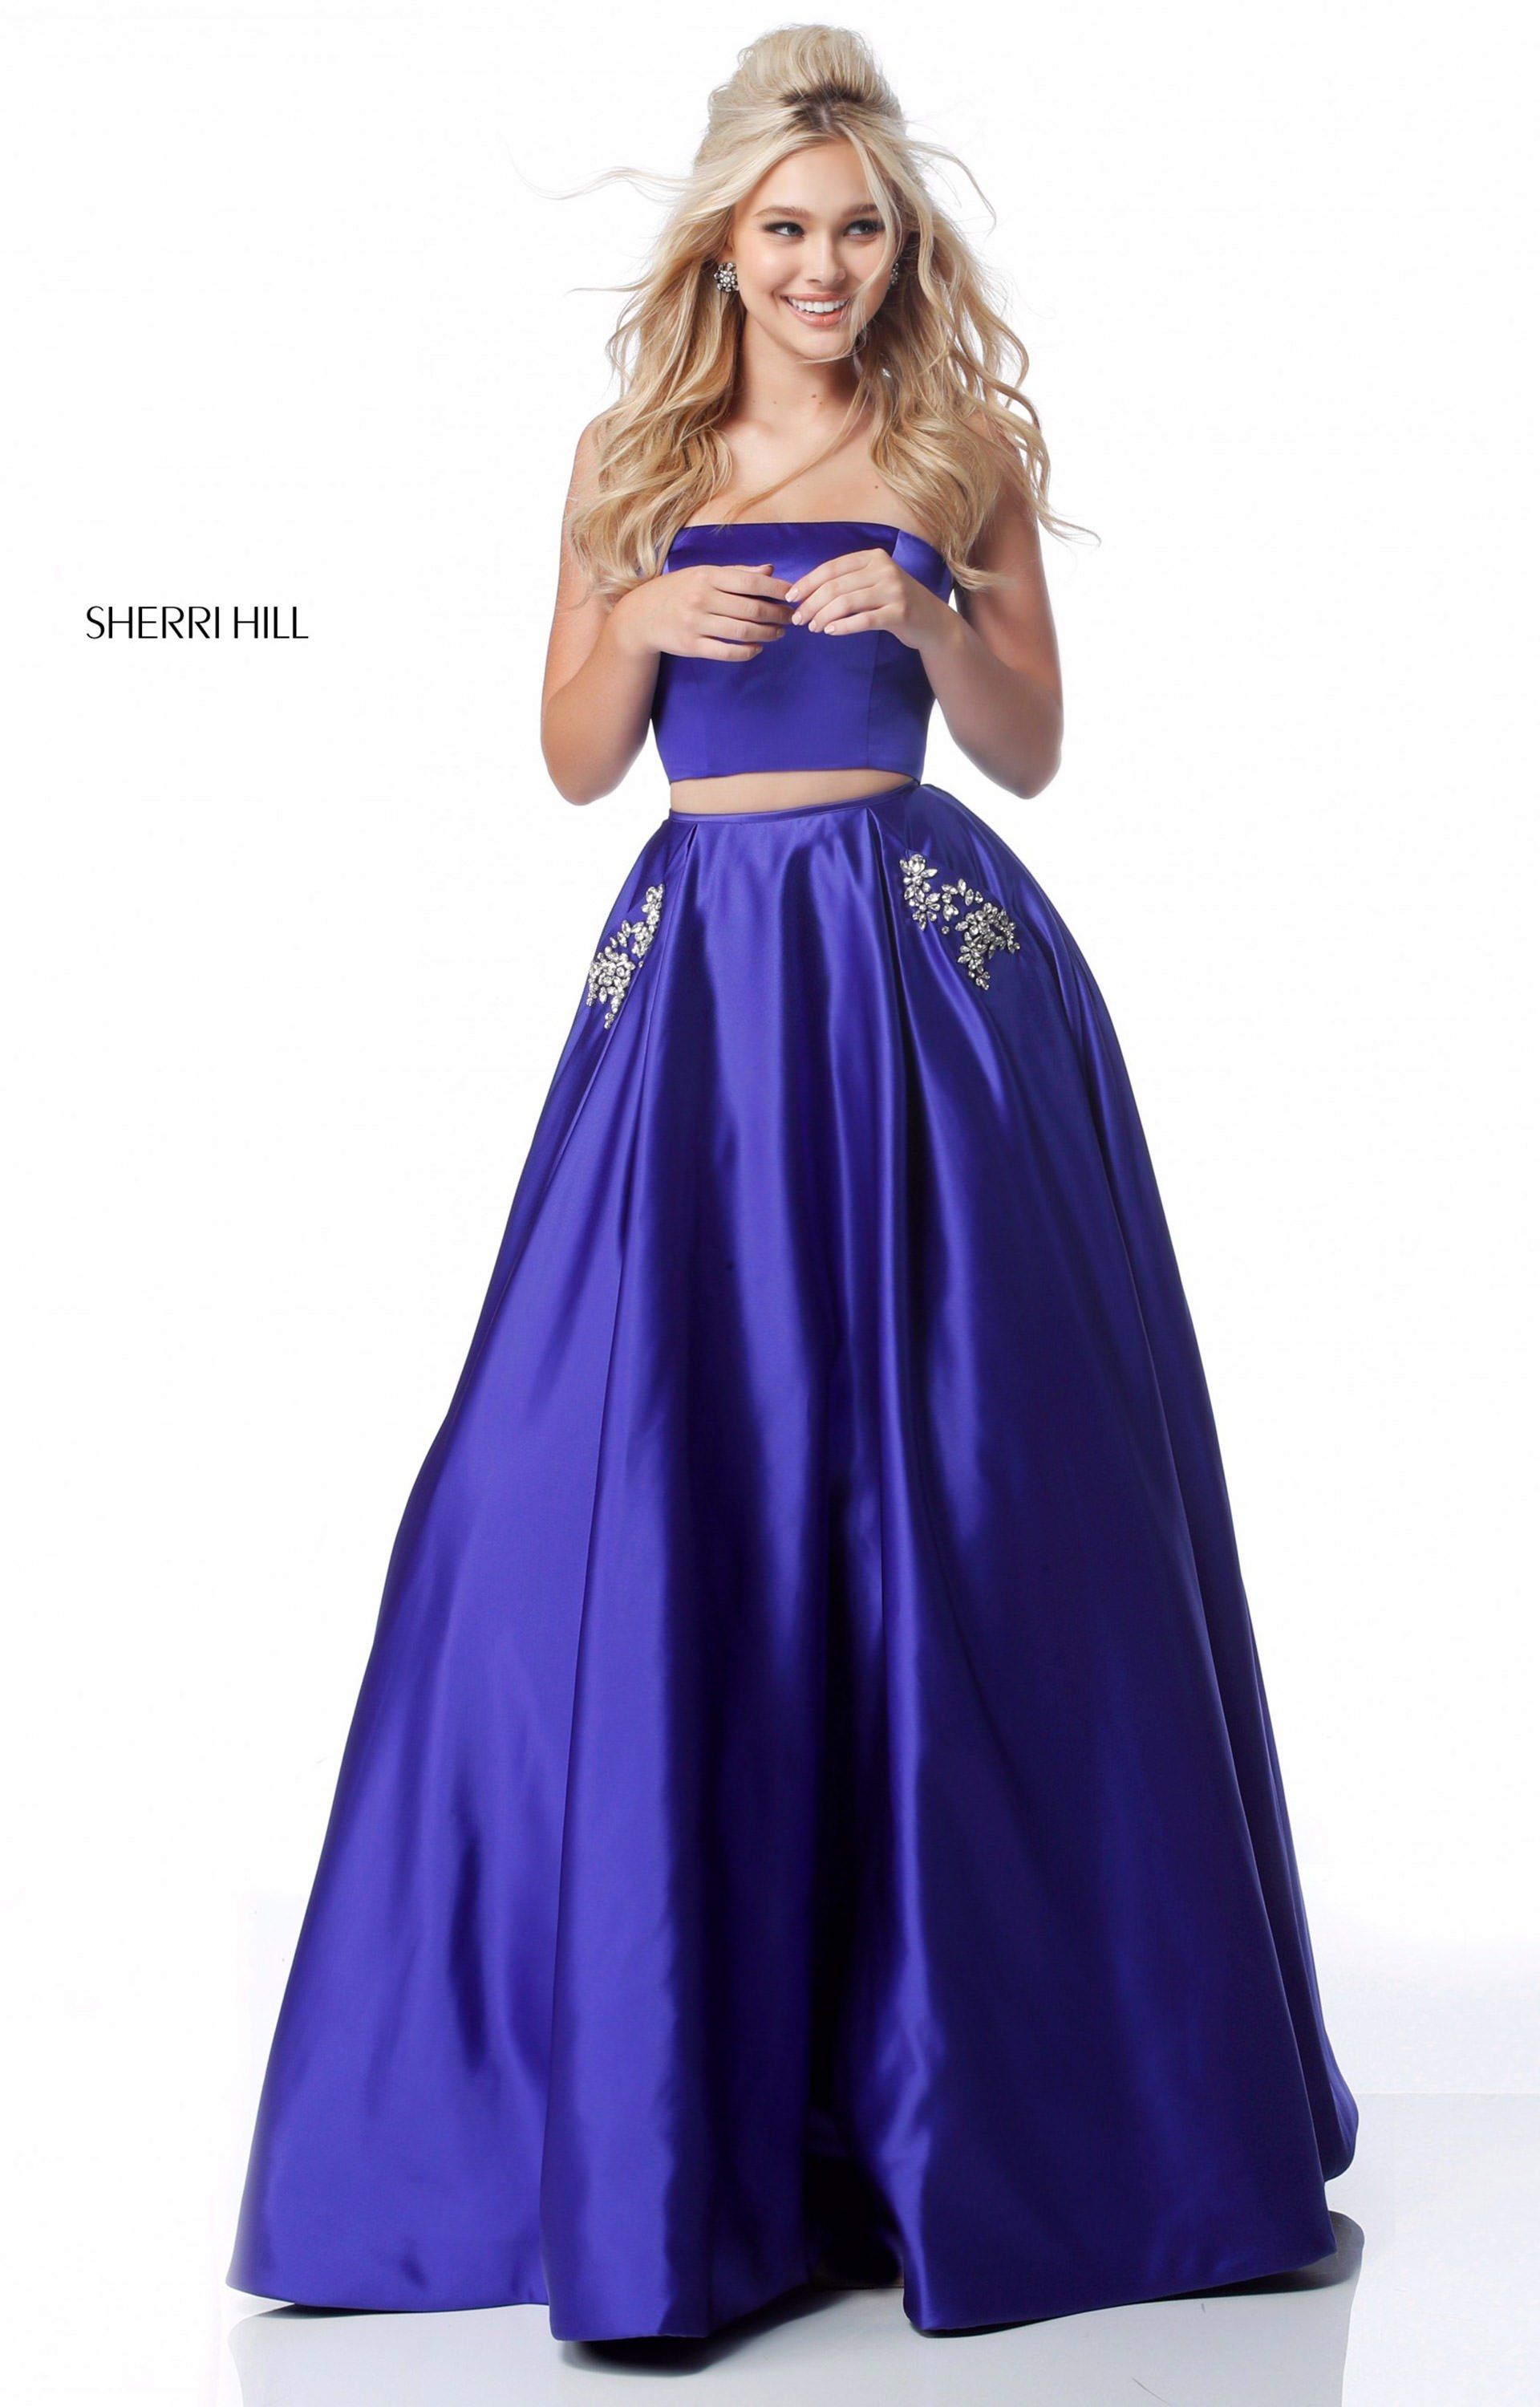 Sherri Hill 51649 - Strapless 2 Piece Ball Gown Prom Dress